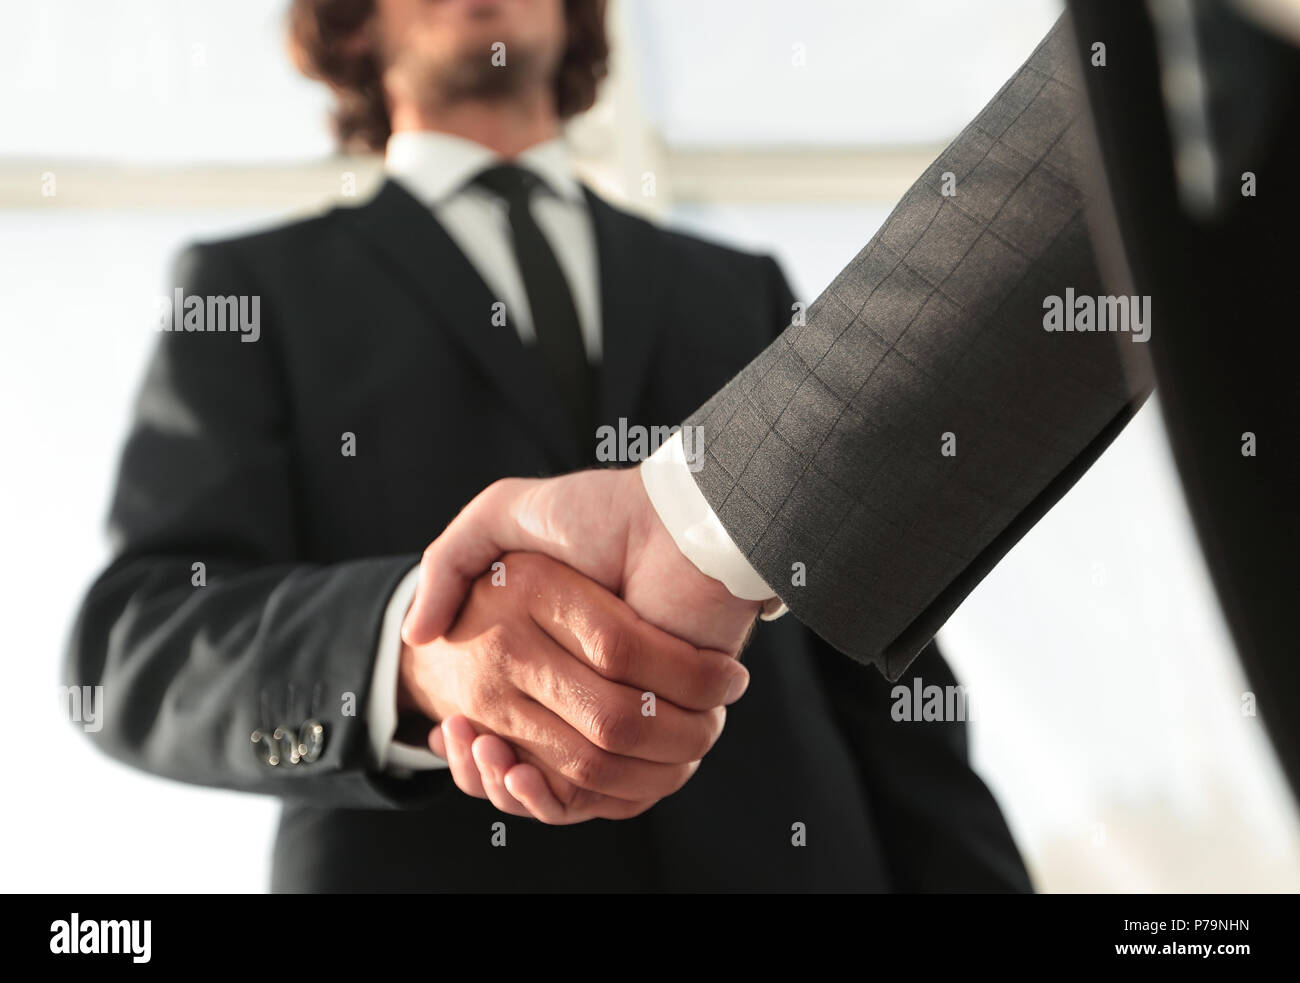 Effective negotiation with client. Business concept photo. - Stock Image